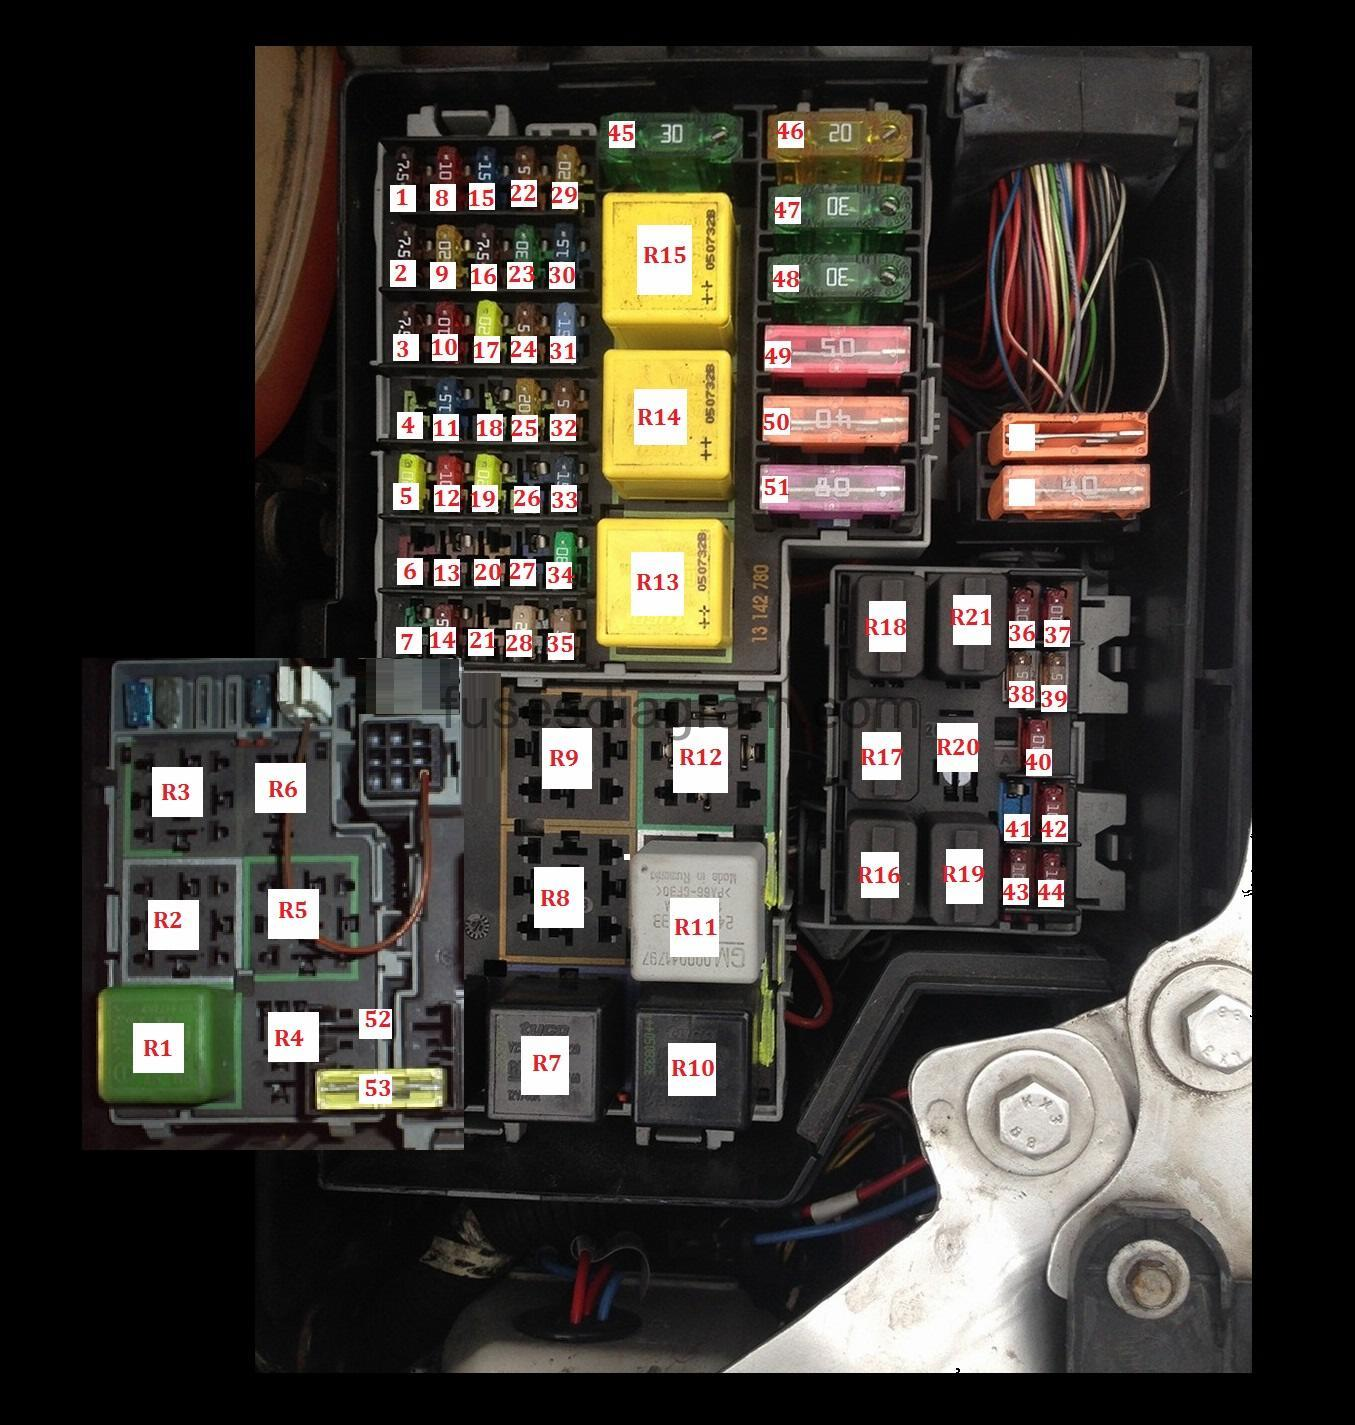 fuse box for vauxhall corsa wiring diagram directory Ford Ranger Fuse Box Layout